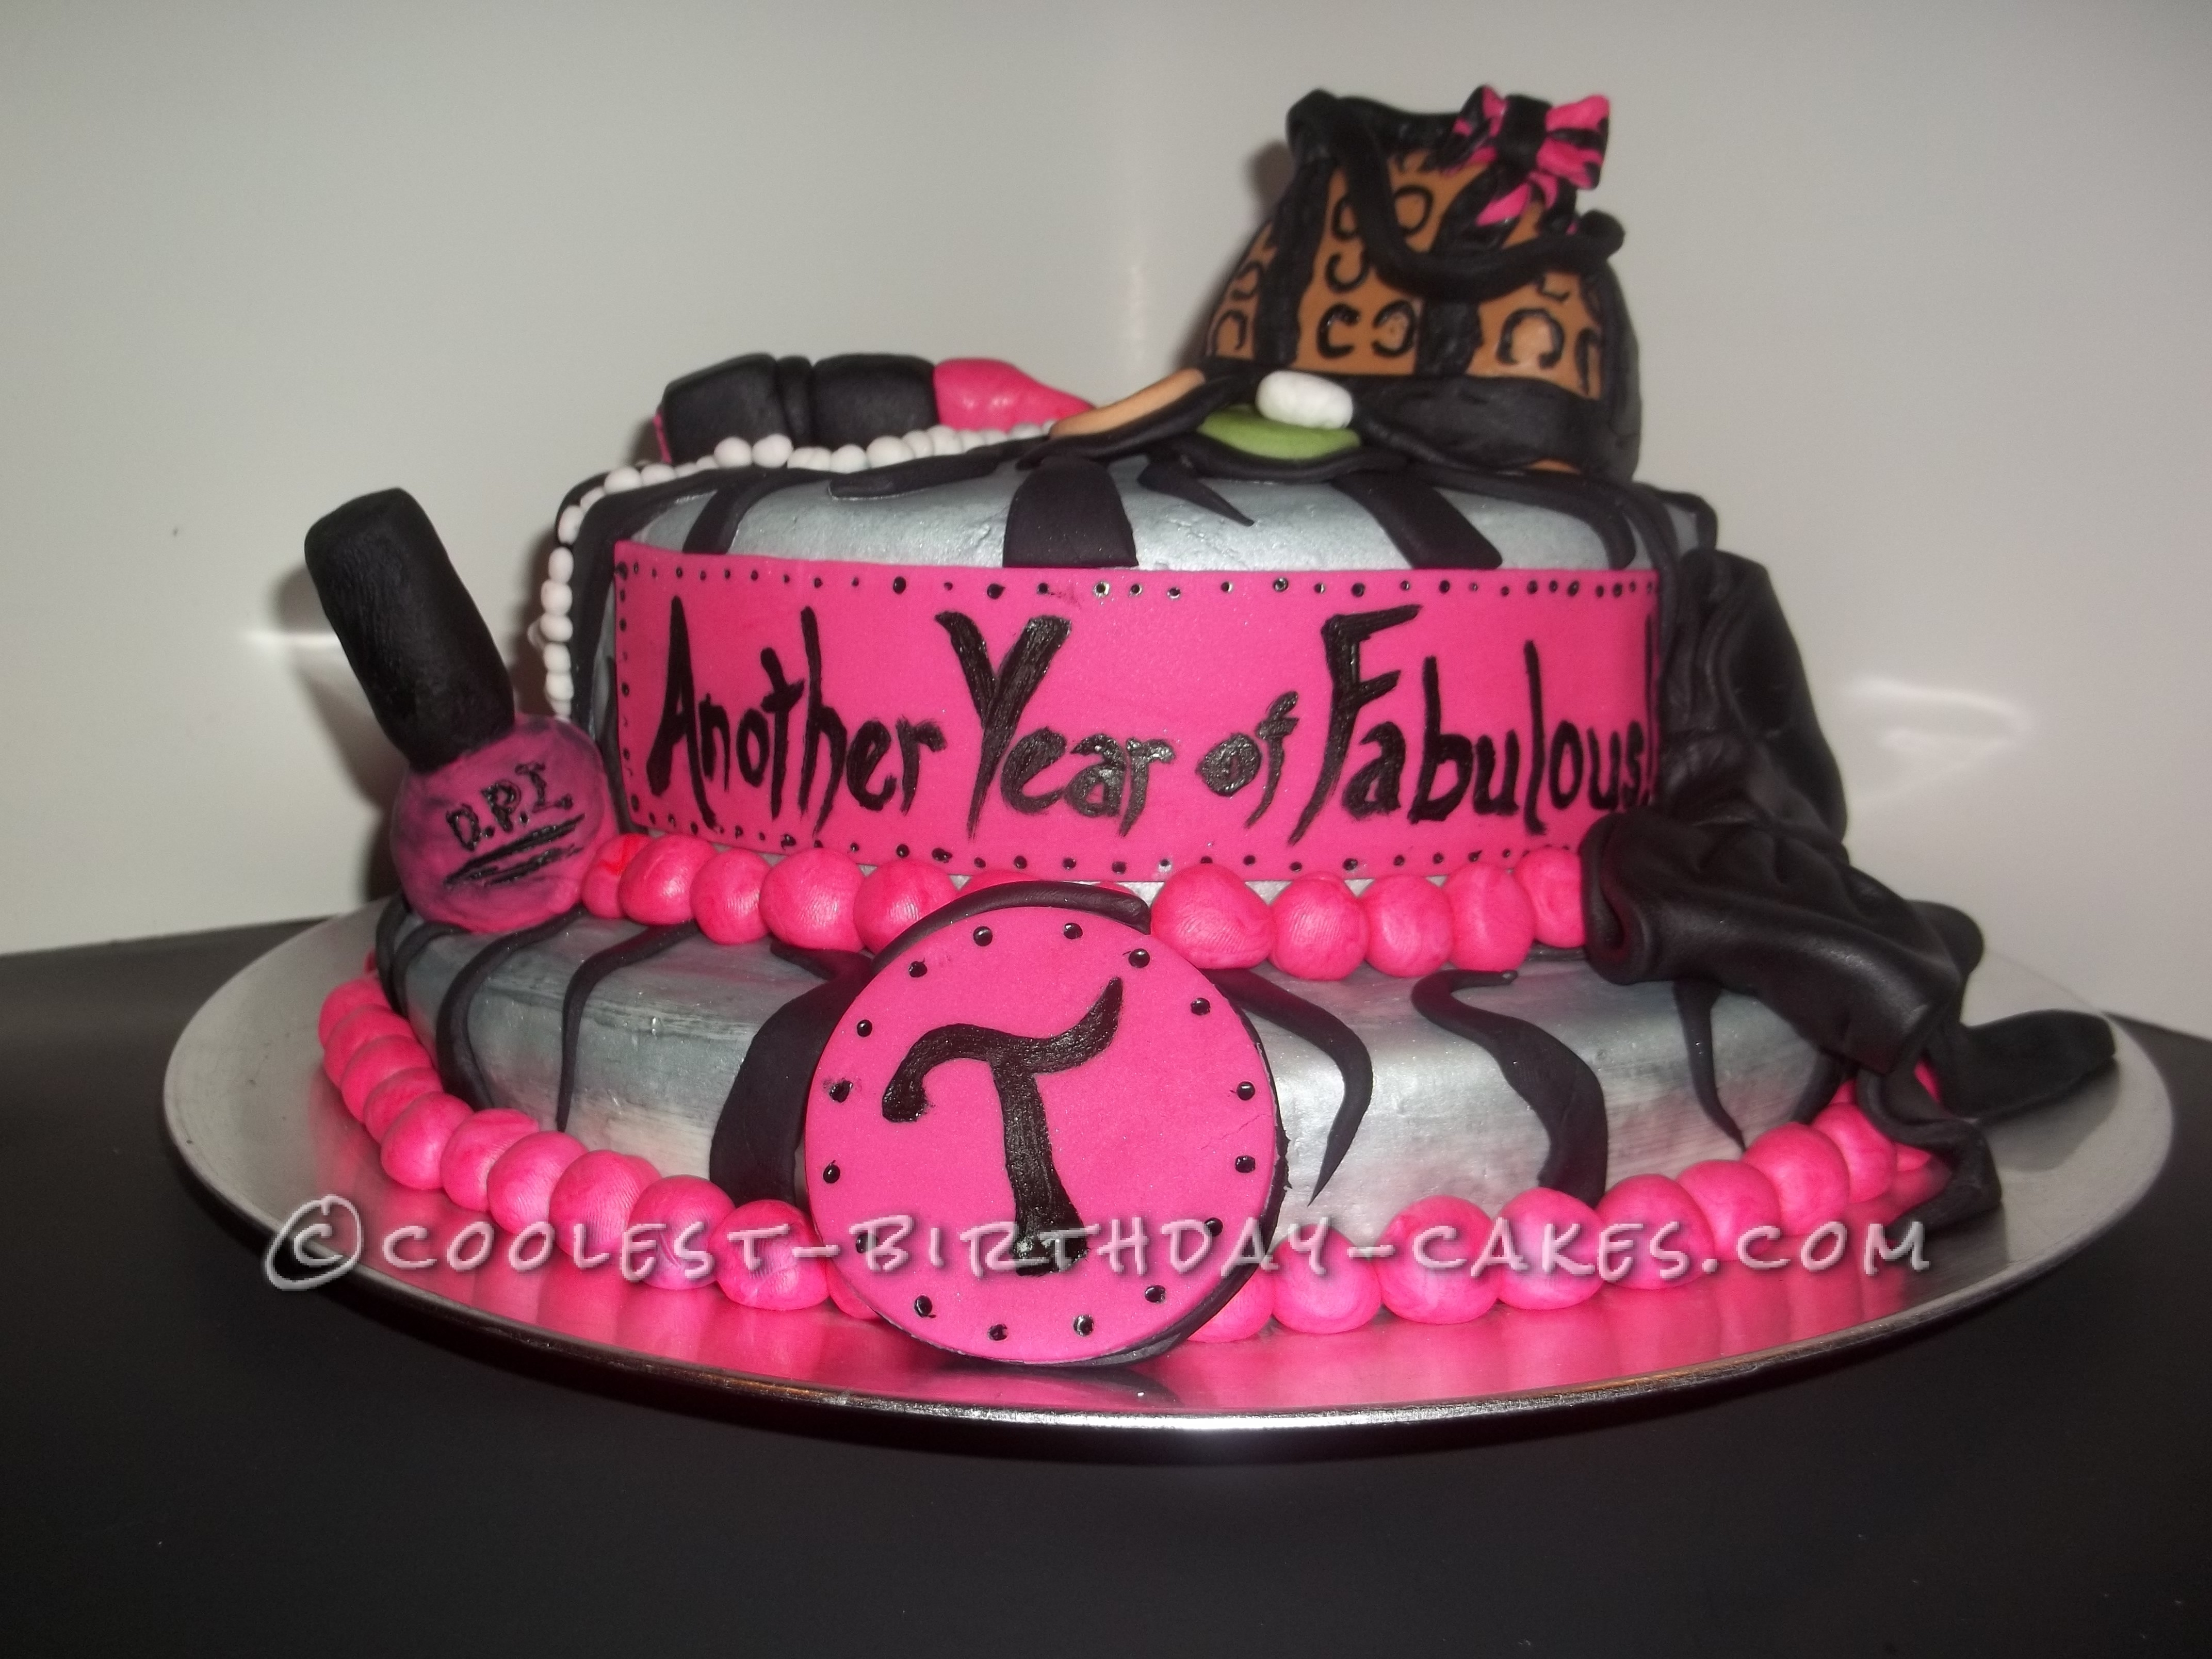 Coolest Glamour Birthday Cake for a Fabulous Friend